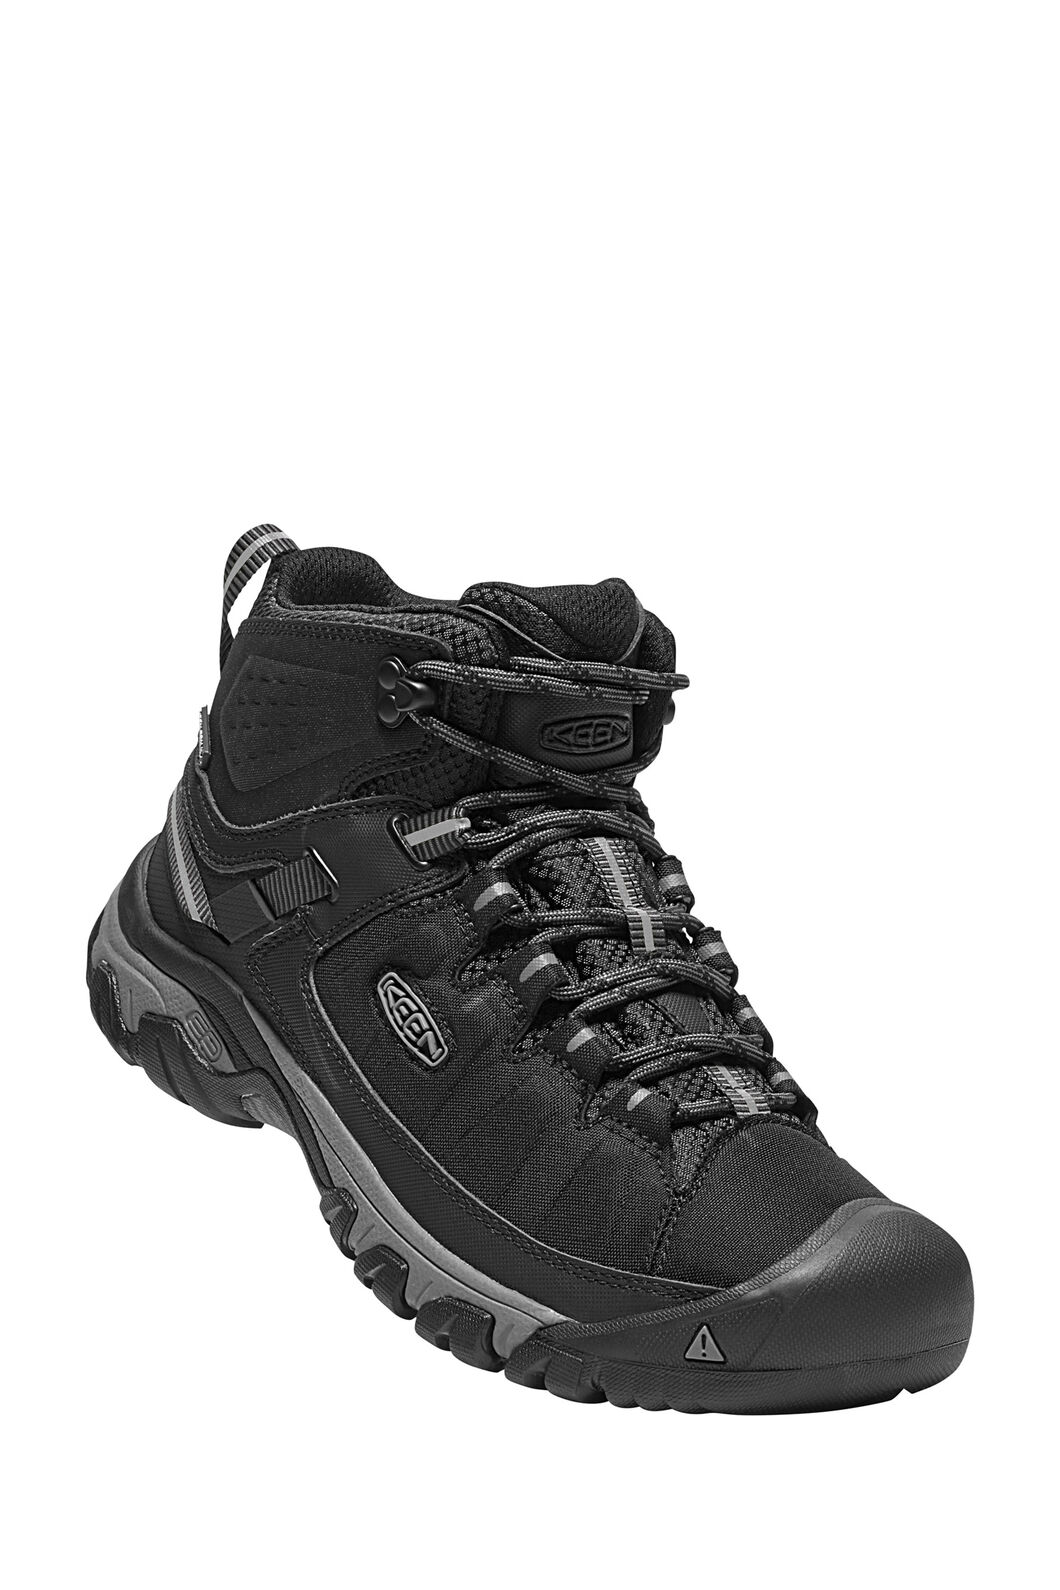 Keen Targhee EXP Mid WP Boots — Men's, Black/Steel Grey, hi-res